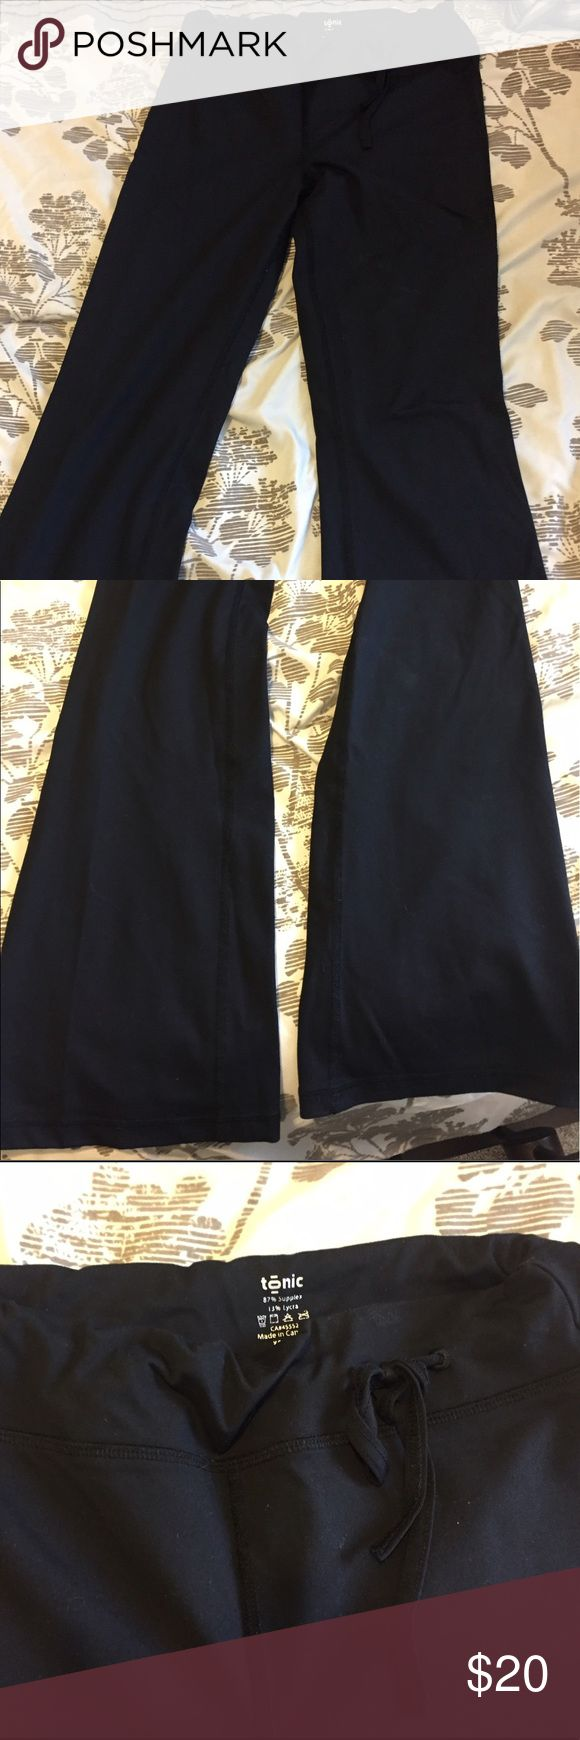 Tonic Yoga Pants Flare Size XS Black Tonic Activewear Yoga Pants. Flares with draw cord waist. Hardly worn. Snug around hips and thighs and flare out below knees. Drawcord waist means they won't be too tight around the waist but stay up as supportive. Tonic Activewear Pants Leggings